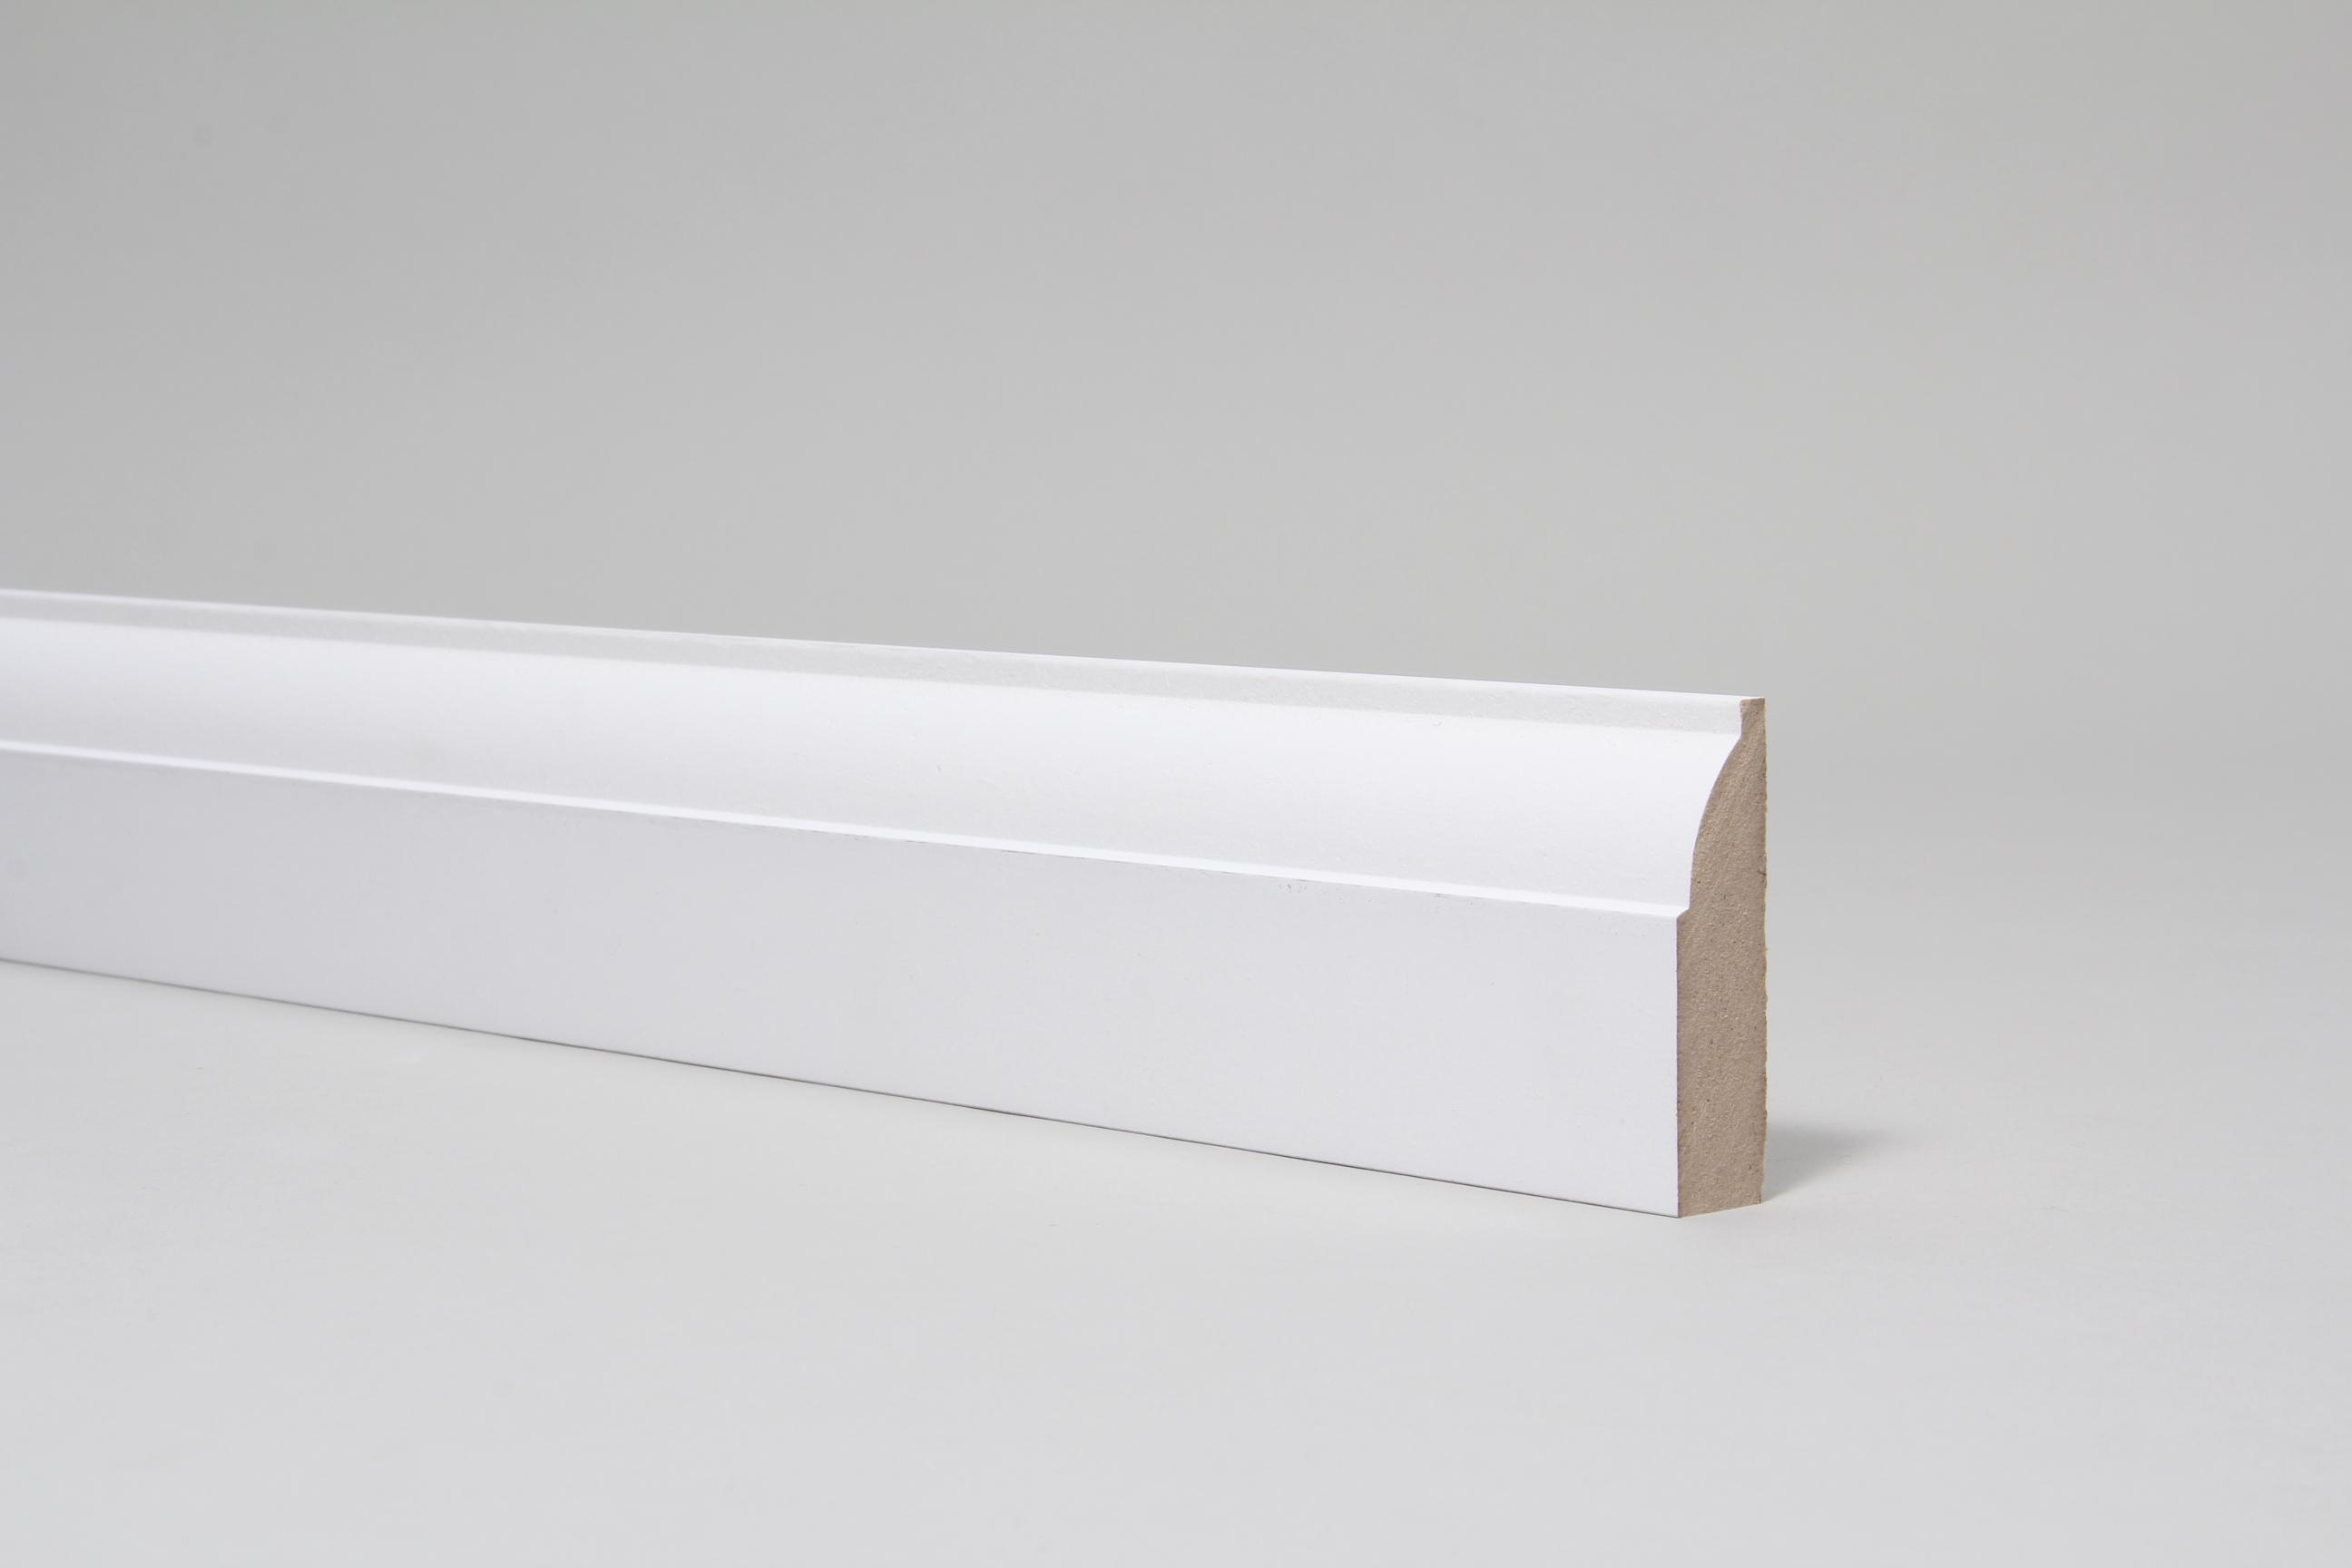 Ovolo 18mm x 68mm Architrave Set Primed